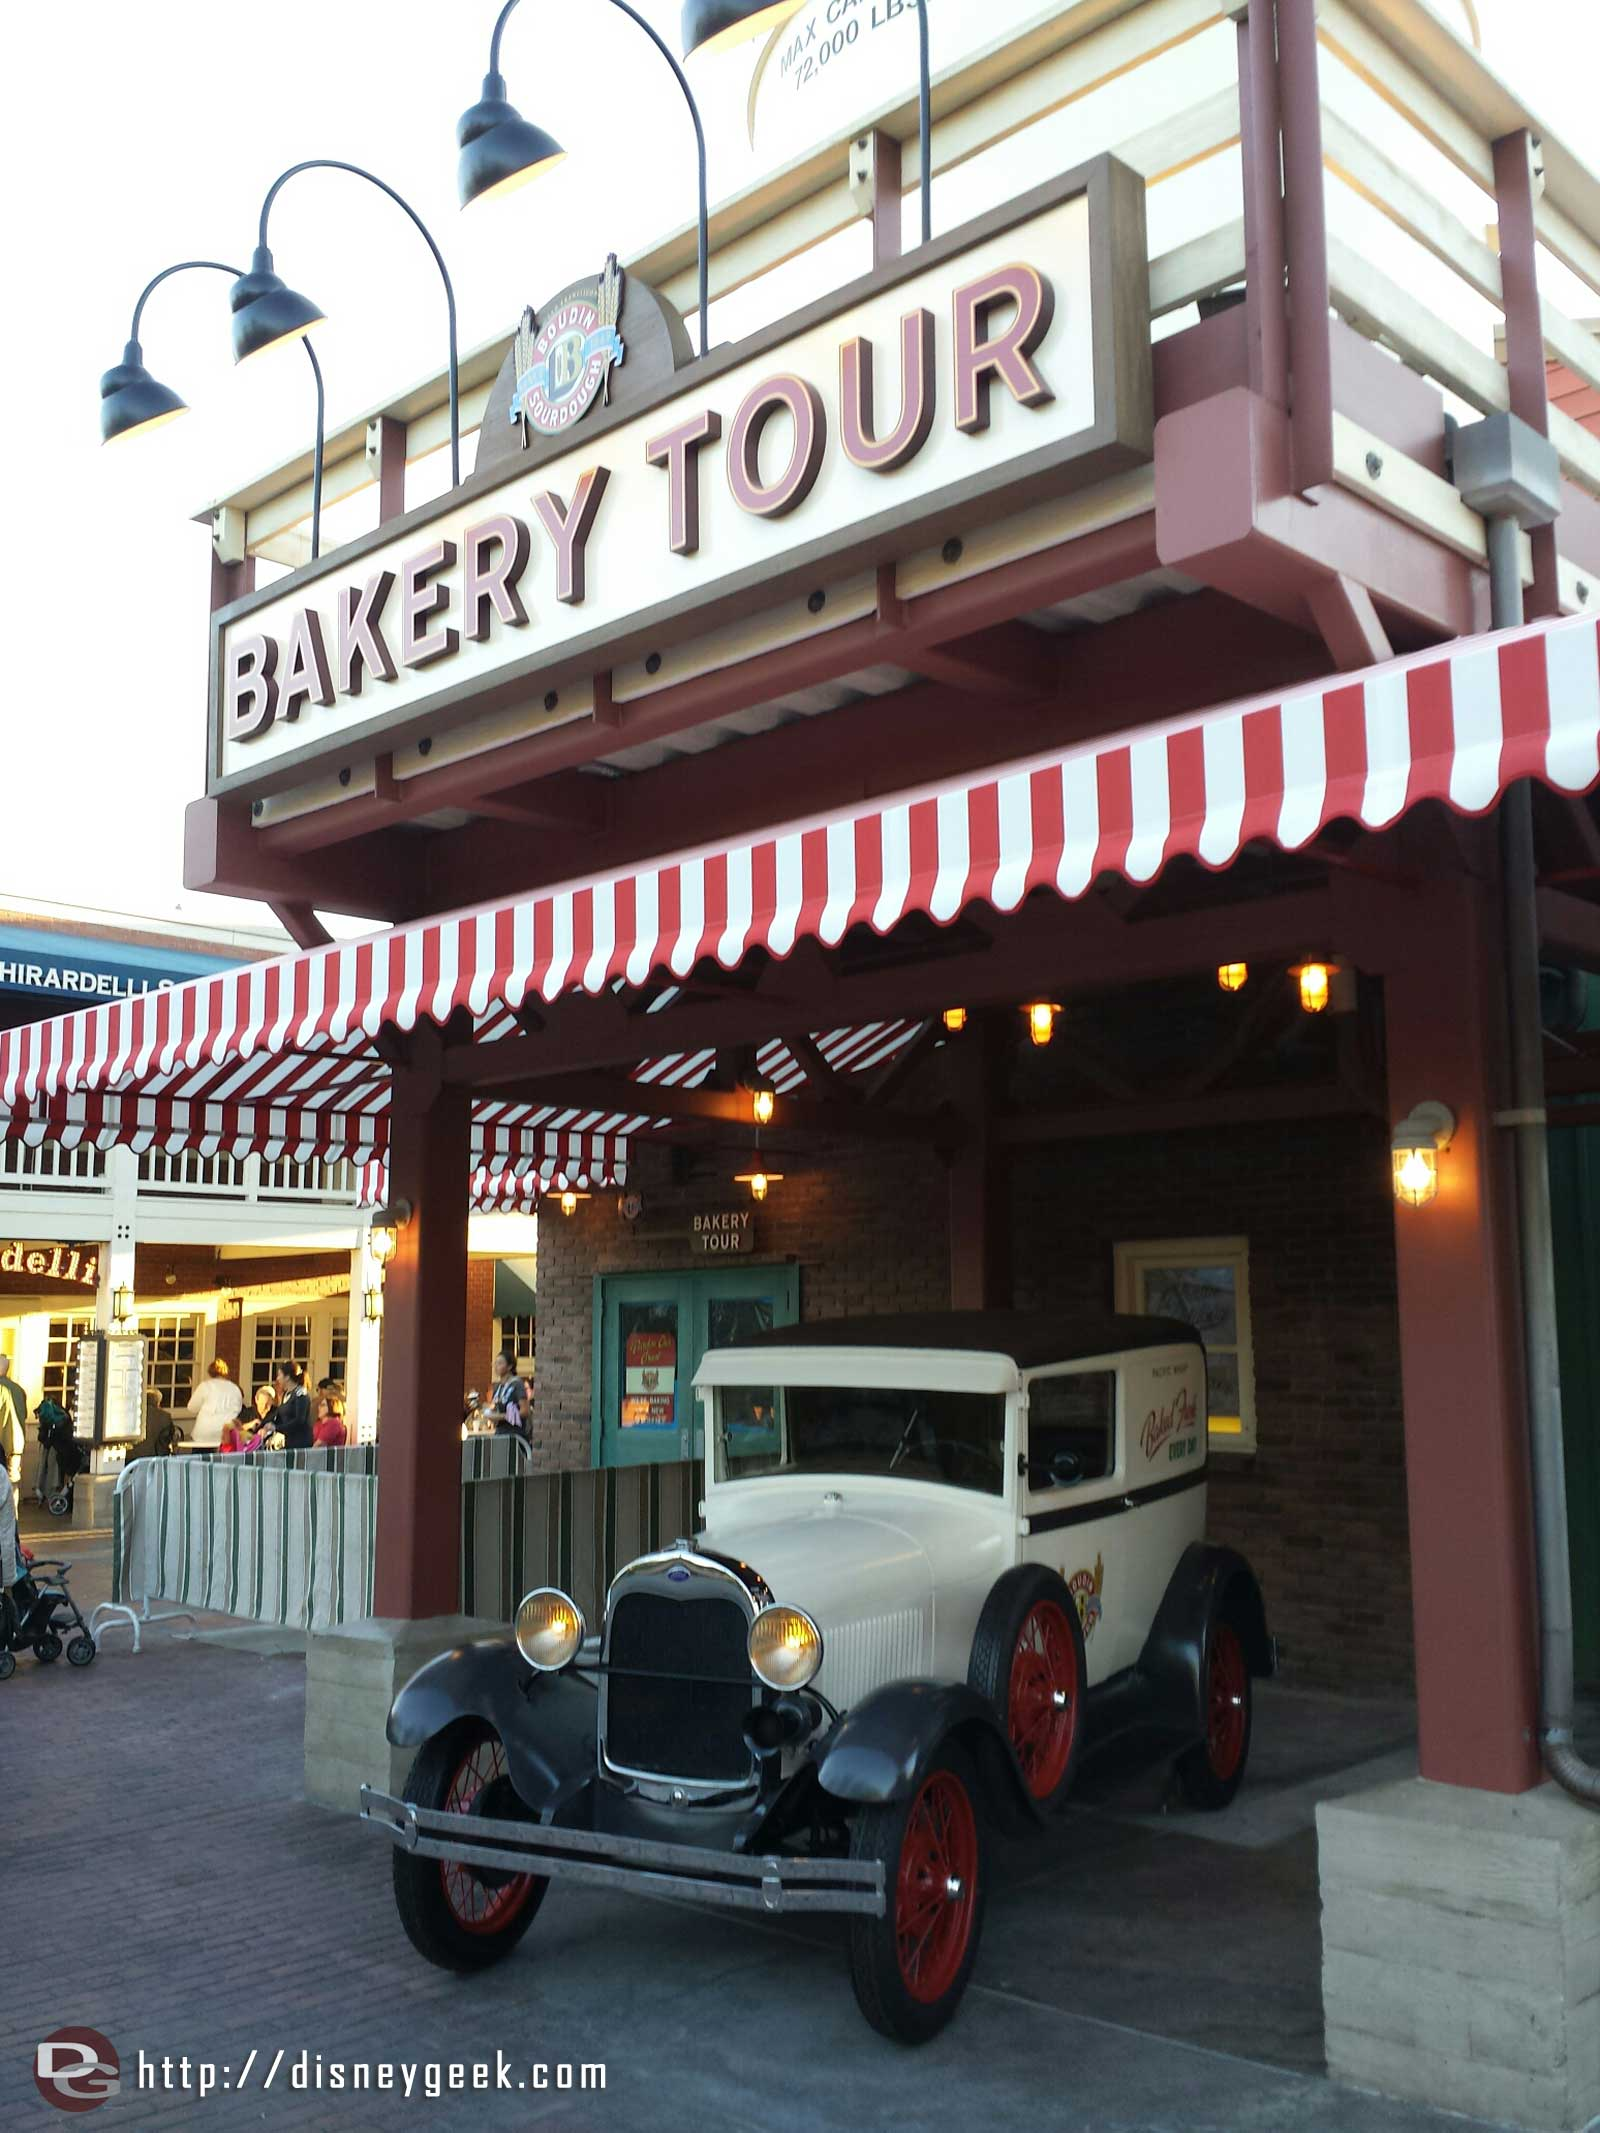 An old Ford truck parked out front of the bakery tour at DCA